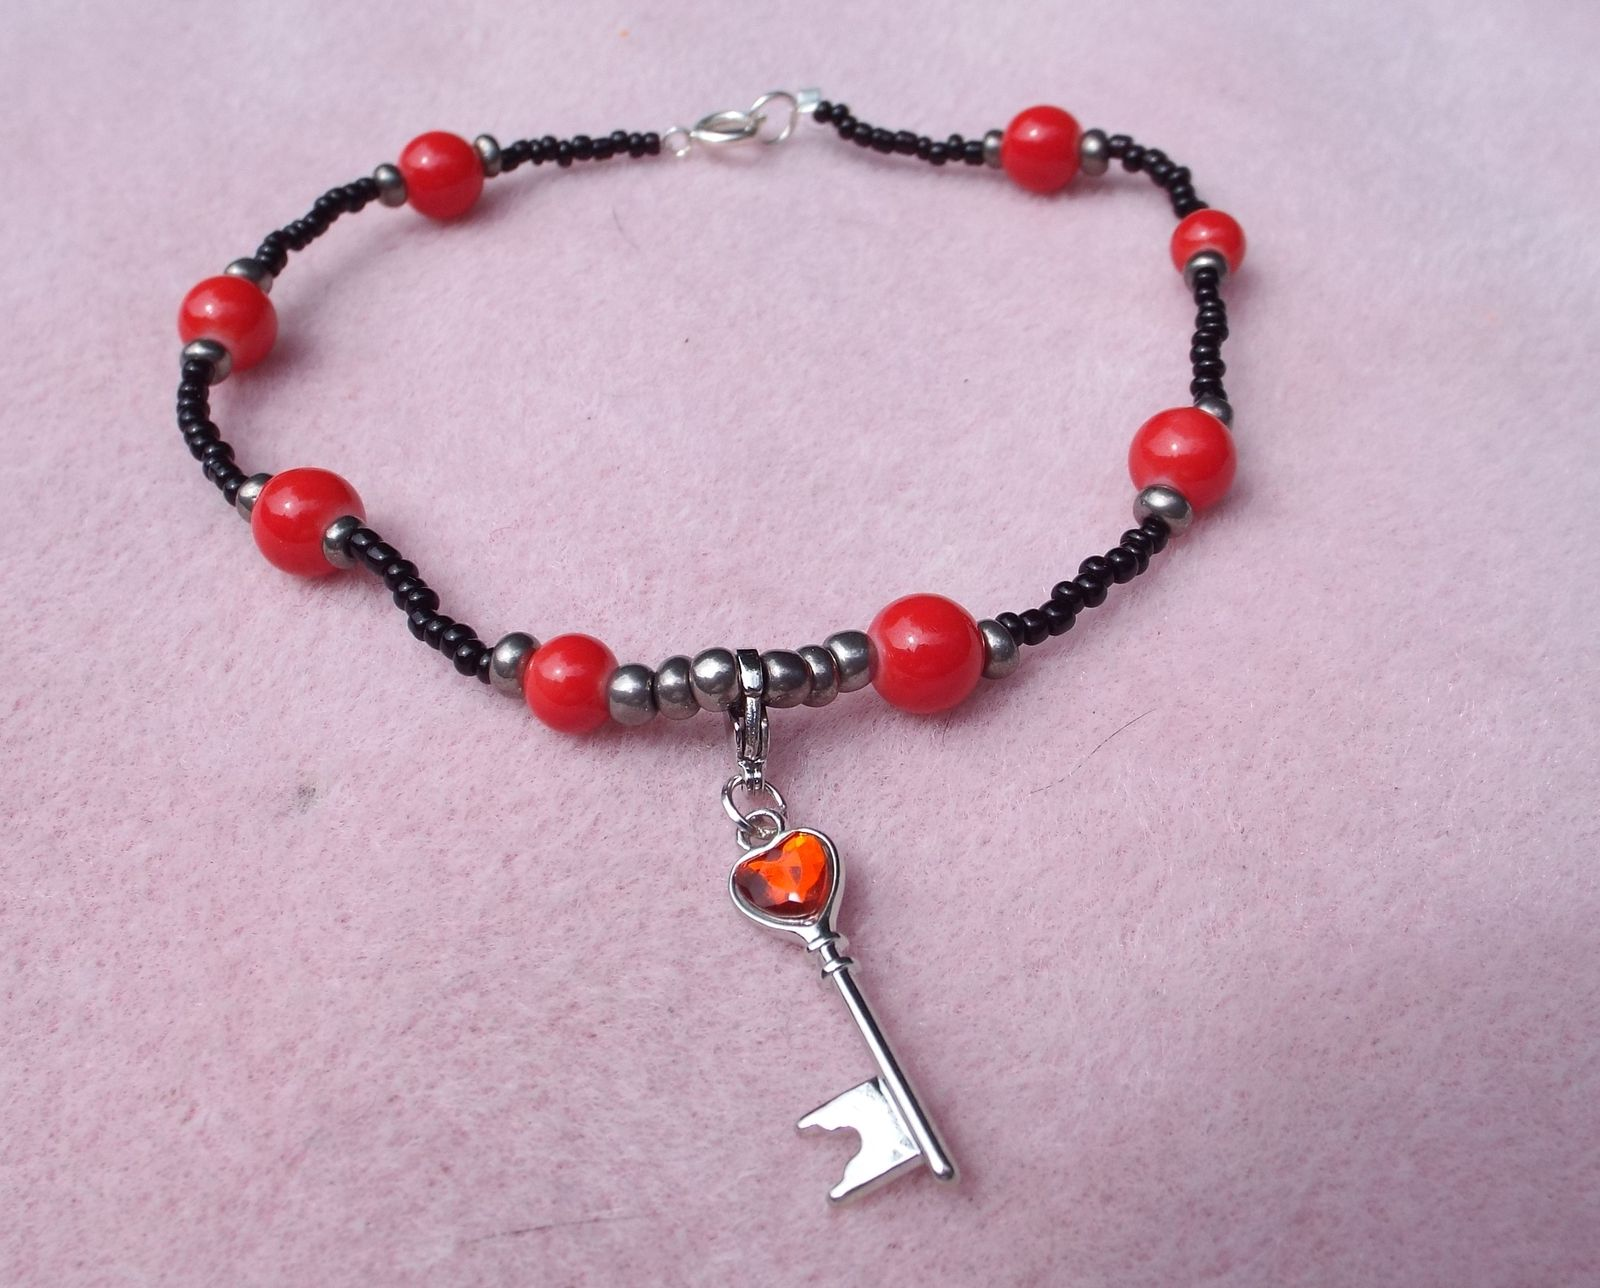 Ankle Bracelet or Anklet black, red & grey beads with key with red heart charm $18.00